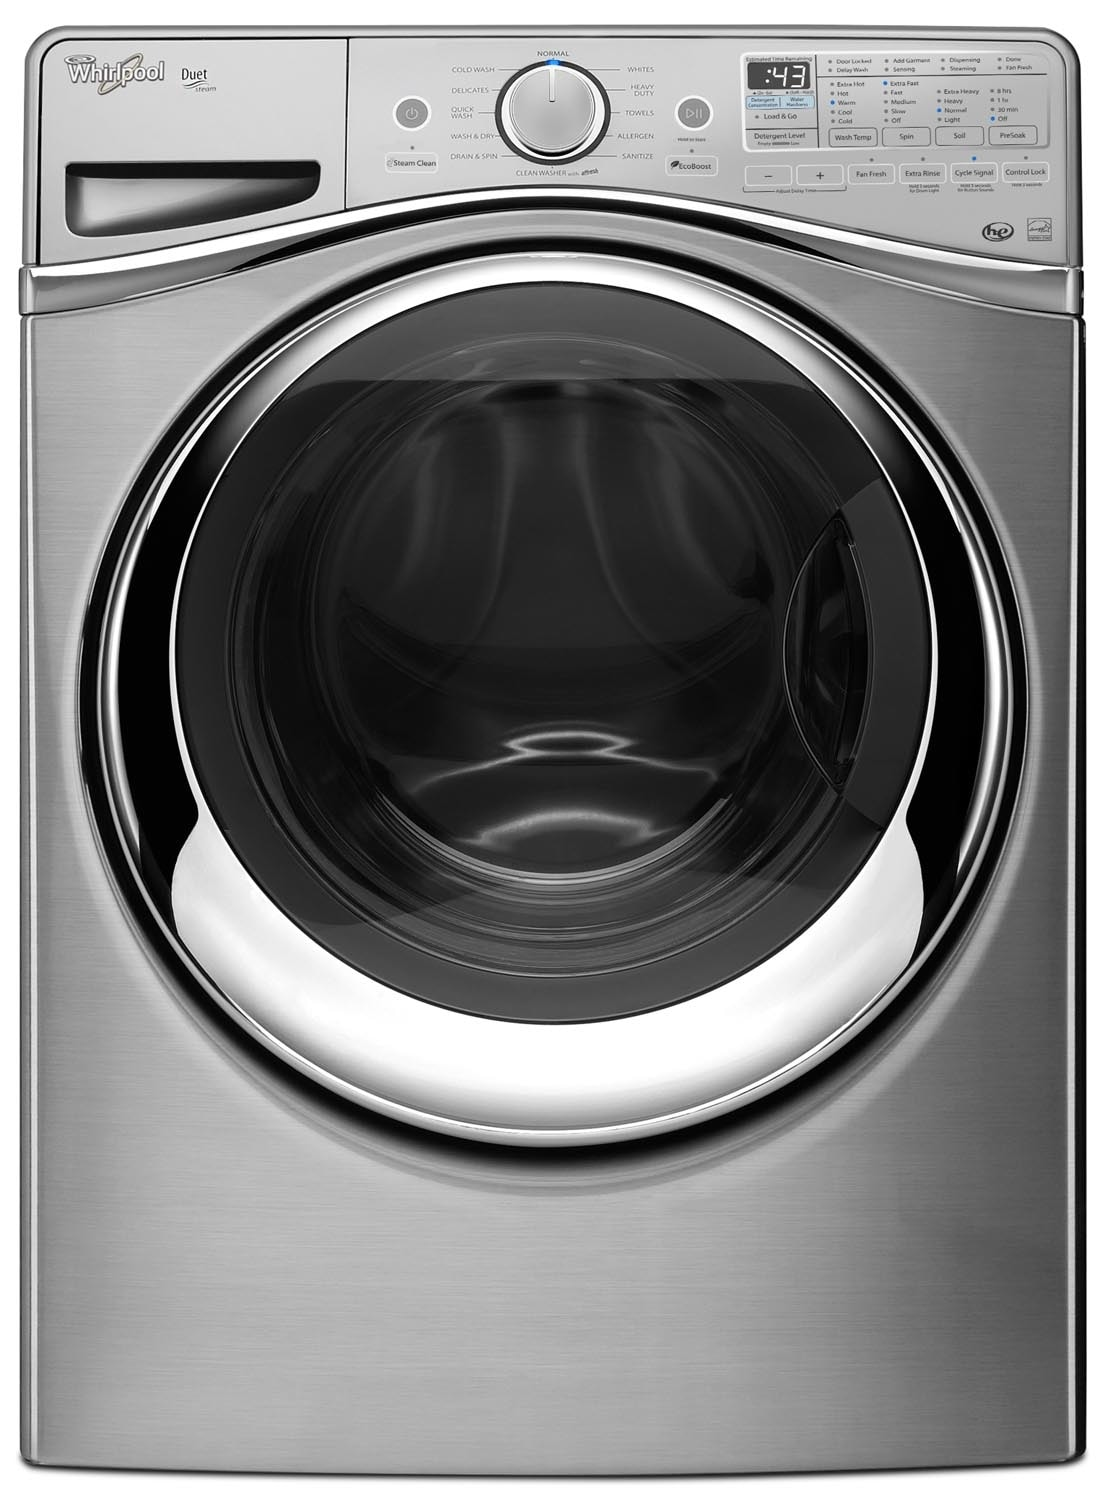 Washers and Dryers - Whirlpool Diamond Steel Front-Load Washer (5.2 Cu. Ft. IEC) - WFW97HEDU